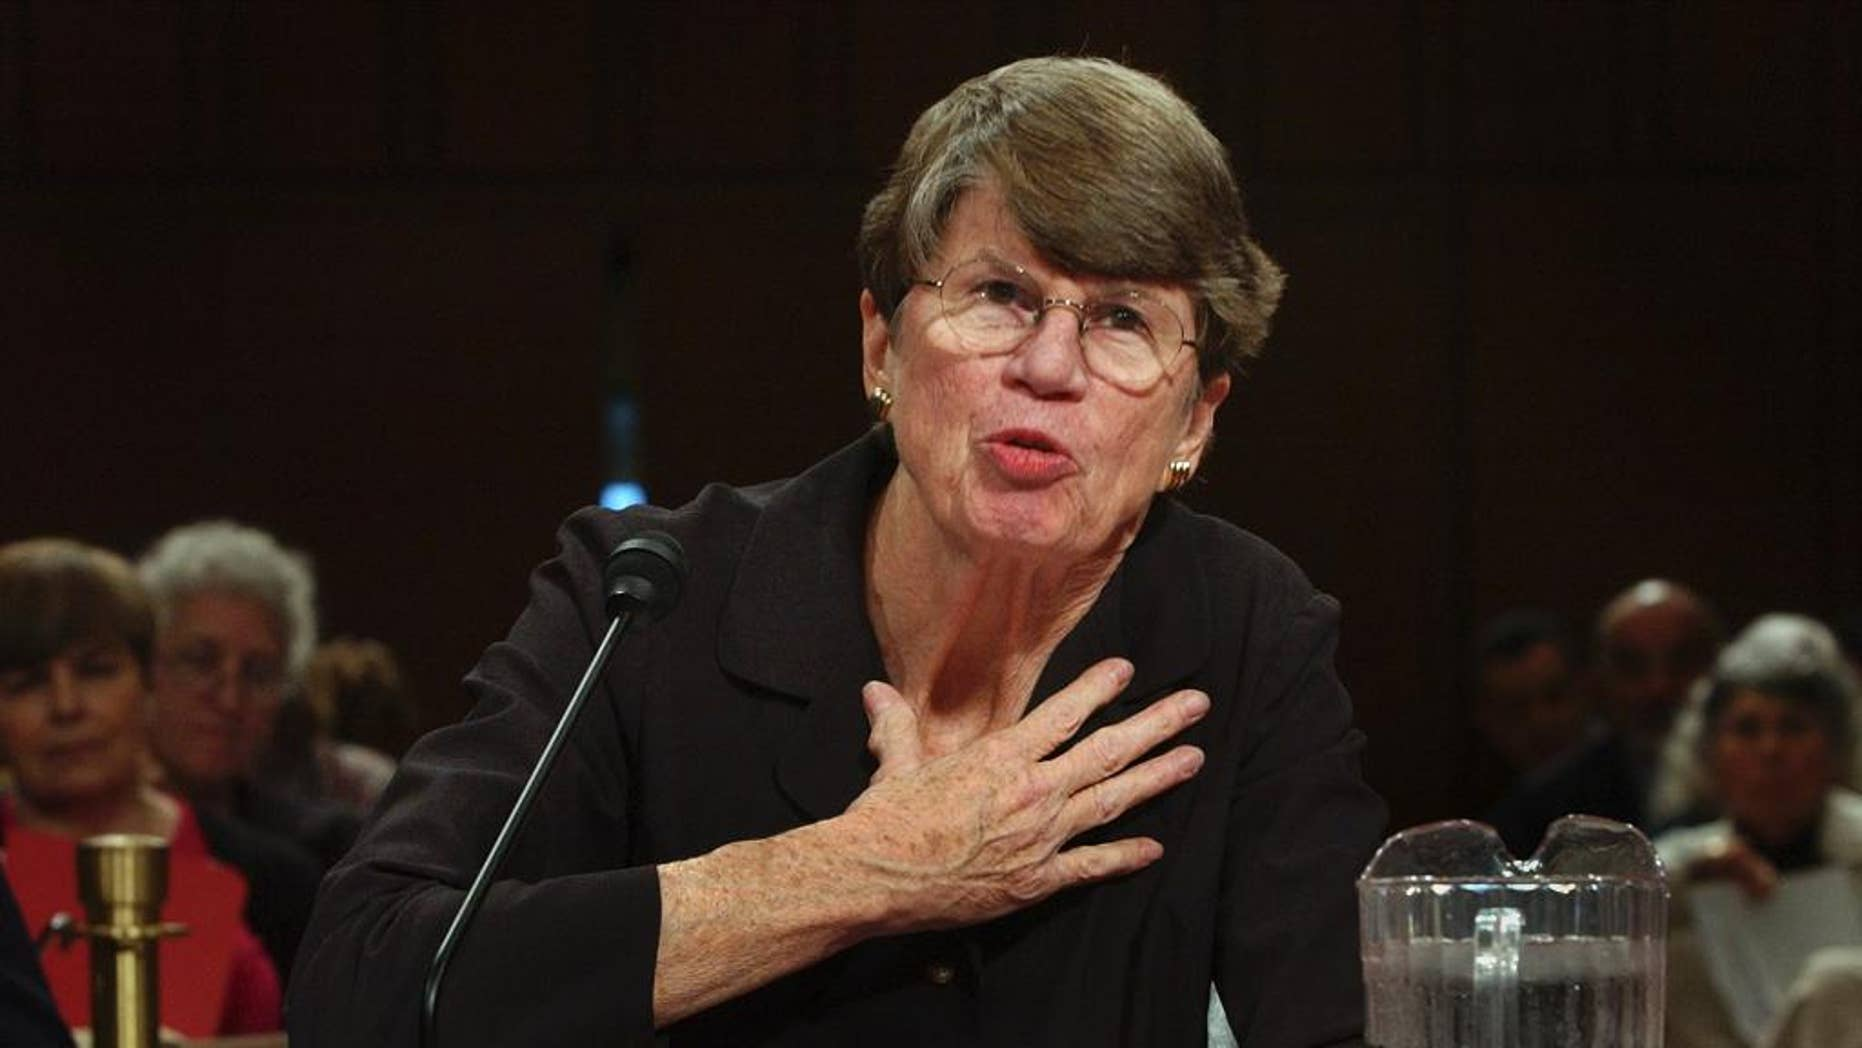 FILE- In this Tuesday, April 13, 2004, file photo, former U.S. Attorney General Janet Reno testifies before the commission investigating the Sept. 11 attacks on Capitol Hill in Washington. The South Florida home where Reno lived will be preserved and donated to Miami-Dade College. It's slated to become part of the environmental center at the college's campus south of Miami. (AP Photo/Dennis Cook, File)